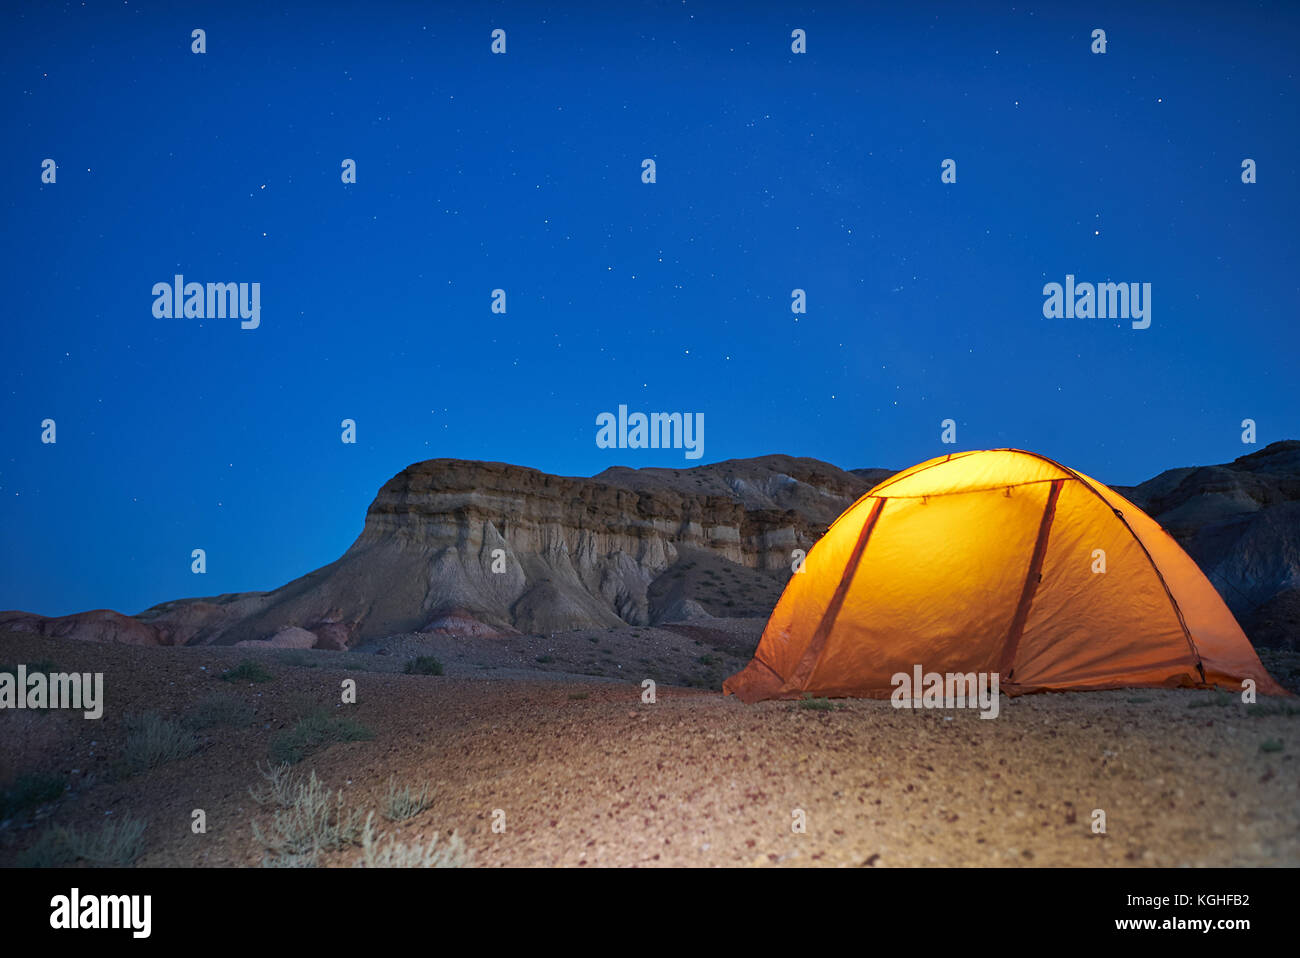 Lonely evening camping in Mongolian canyons. yellow illuminated tent is located near canyons - Stock Image